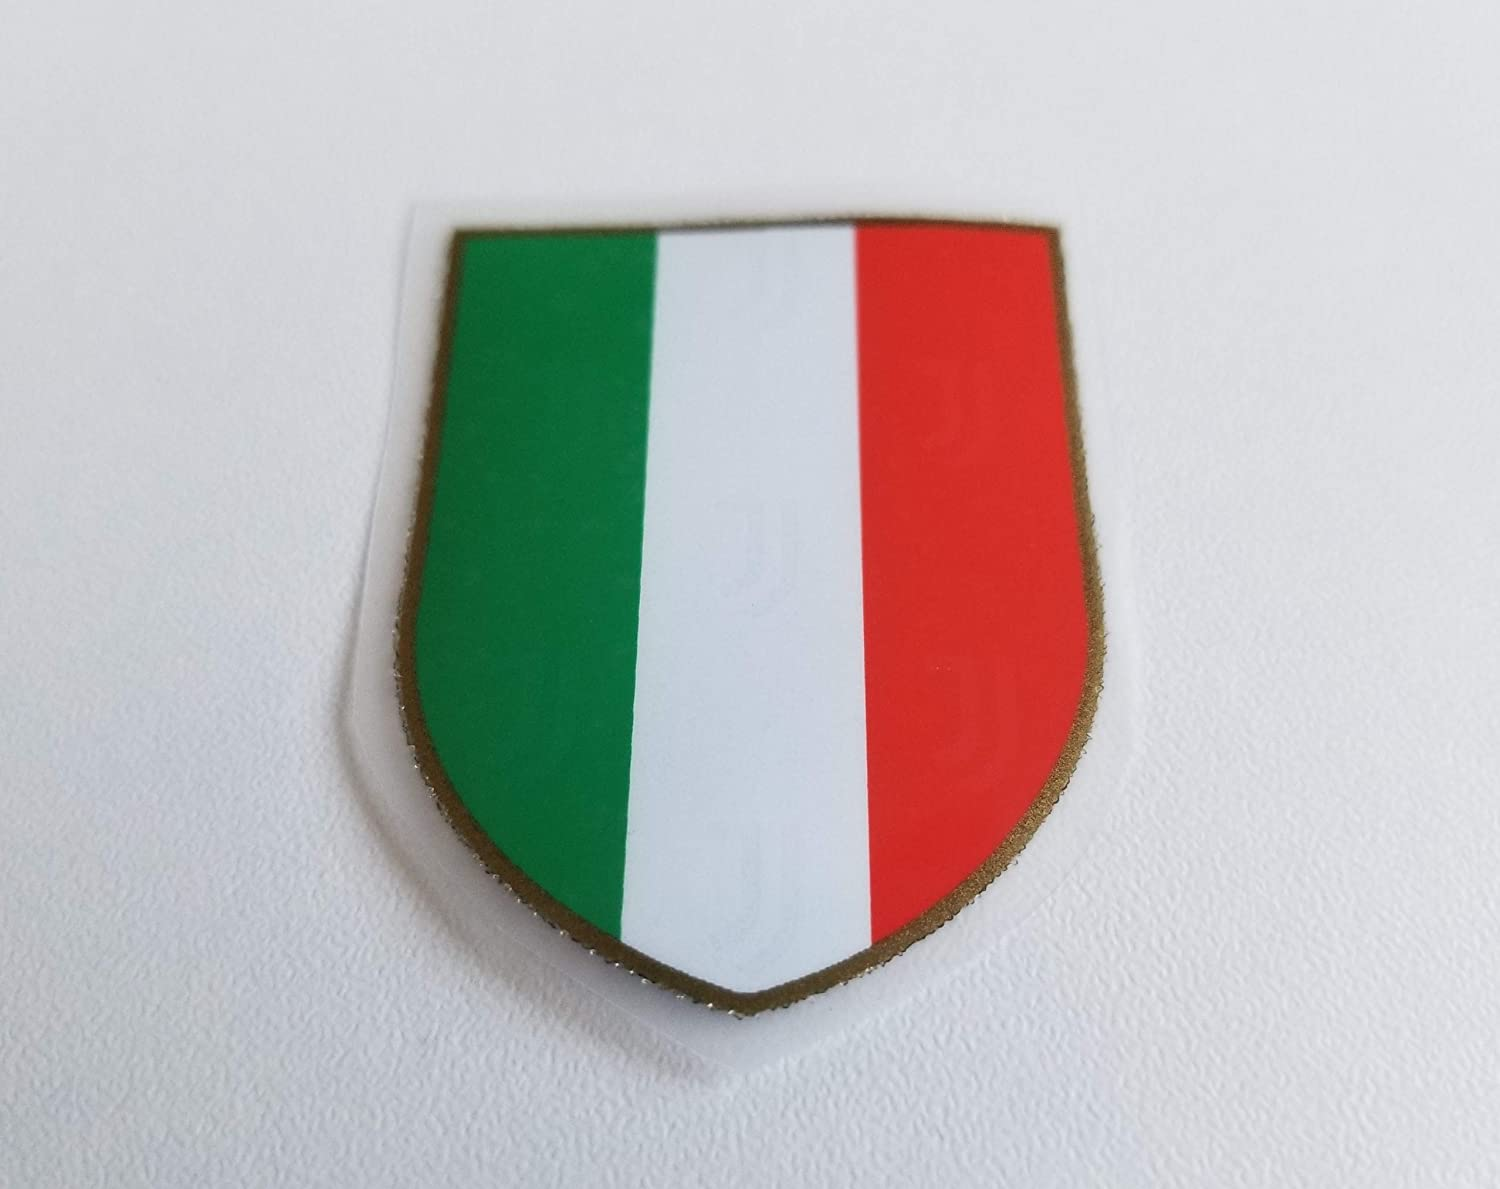 amazon com serie a ronaldo patch badge logo patch scudetto shield tricolour juve 2020 2019 2019 20 j survey clothing serie a ronaldo patch badge logo patch scudetto shield tricolour juve 2020 2019 2019 20 j survey